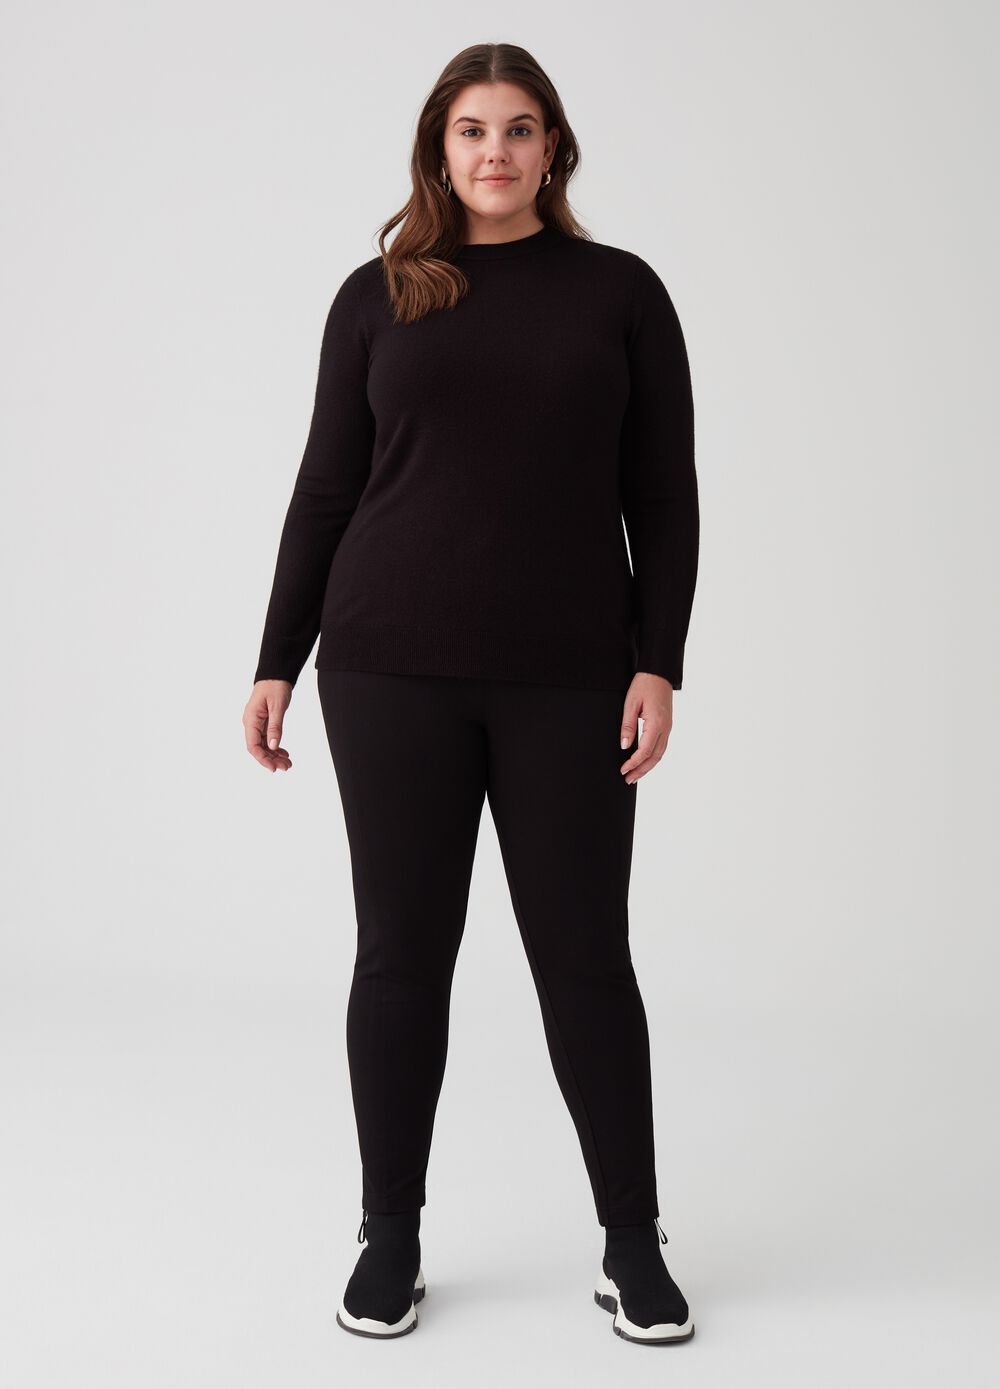 Curvy stretch leggings with elastic waist band